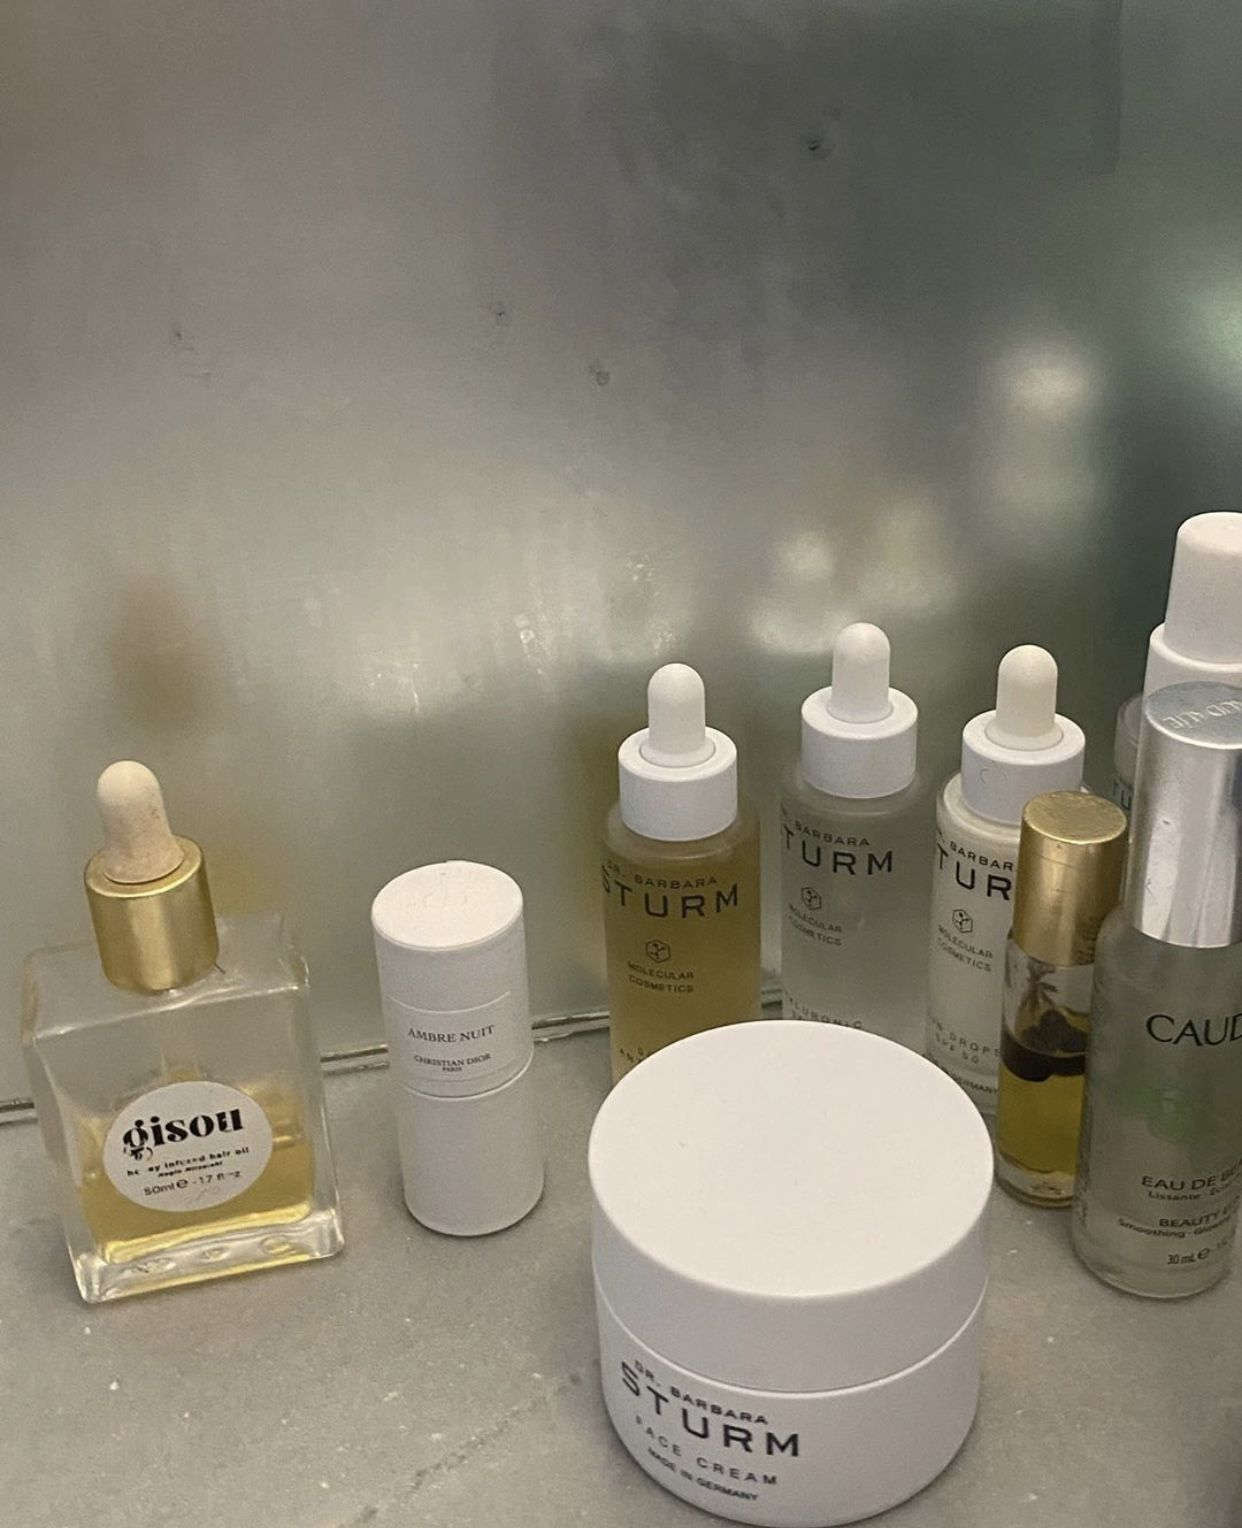 Pin by 𝐁.𝐌. on Beauté in 2020 Diy skin care, Skin care